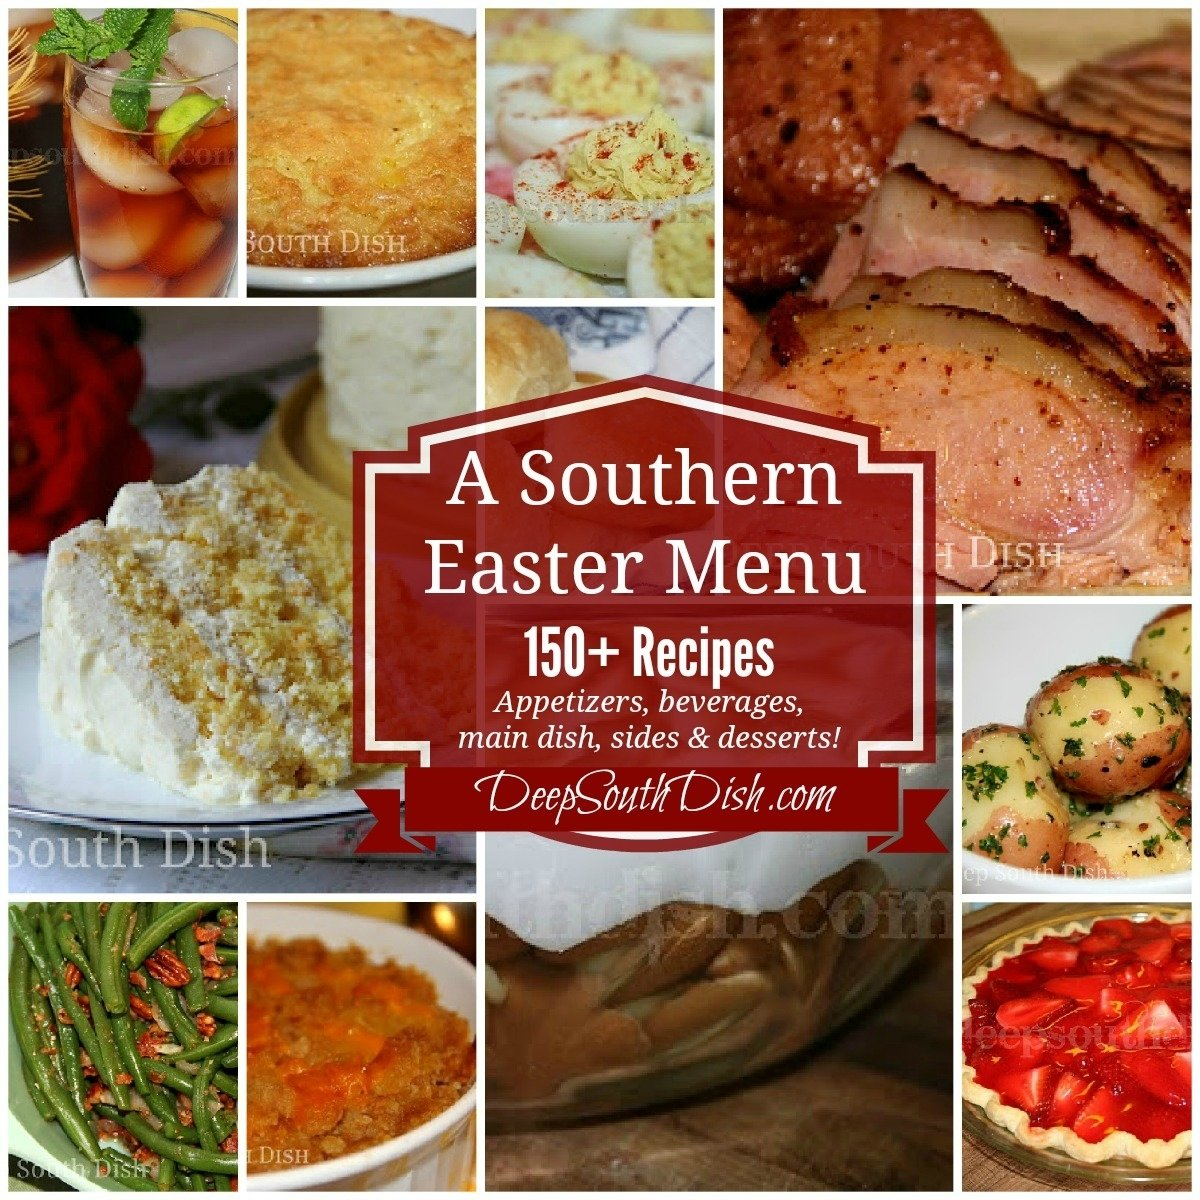 10 Cute Traditional Christmas Dinner Menu Ideas deep south dish southern easter menu ideas and recipes 8 2021